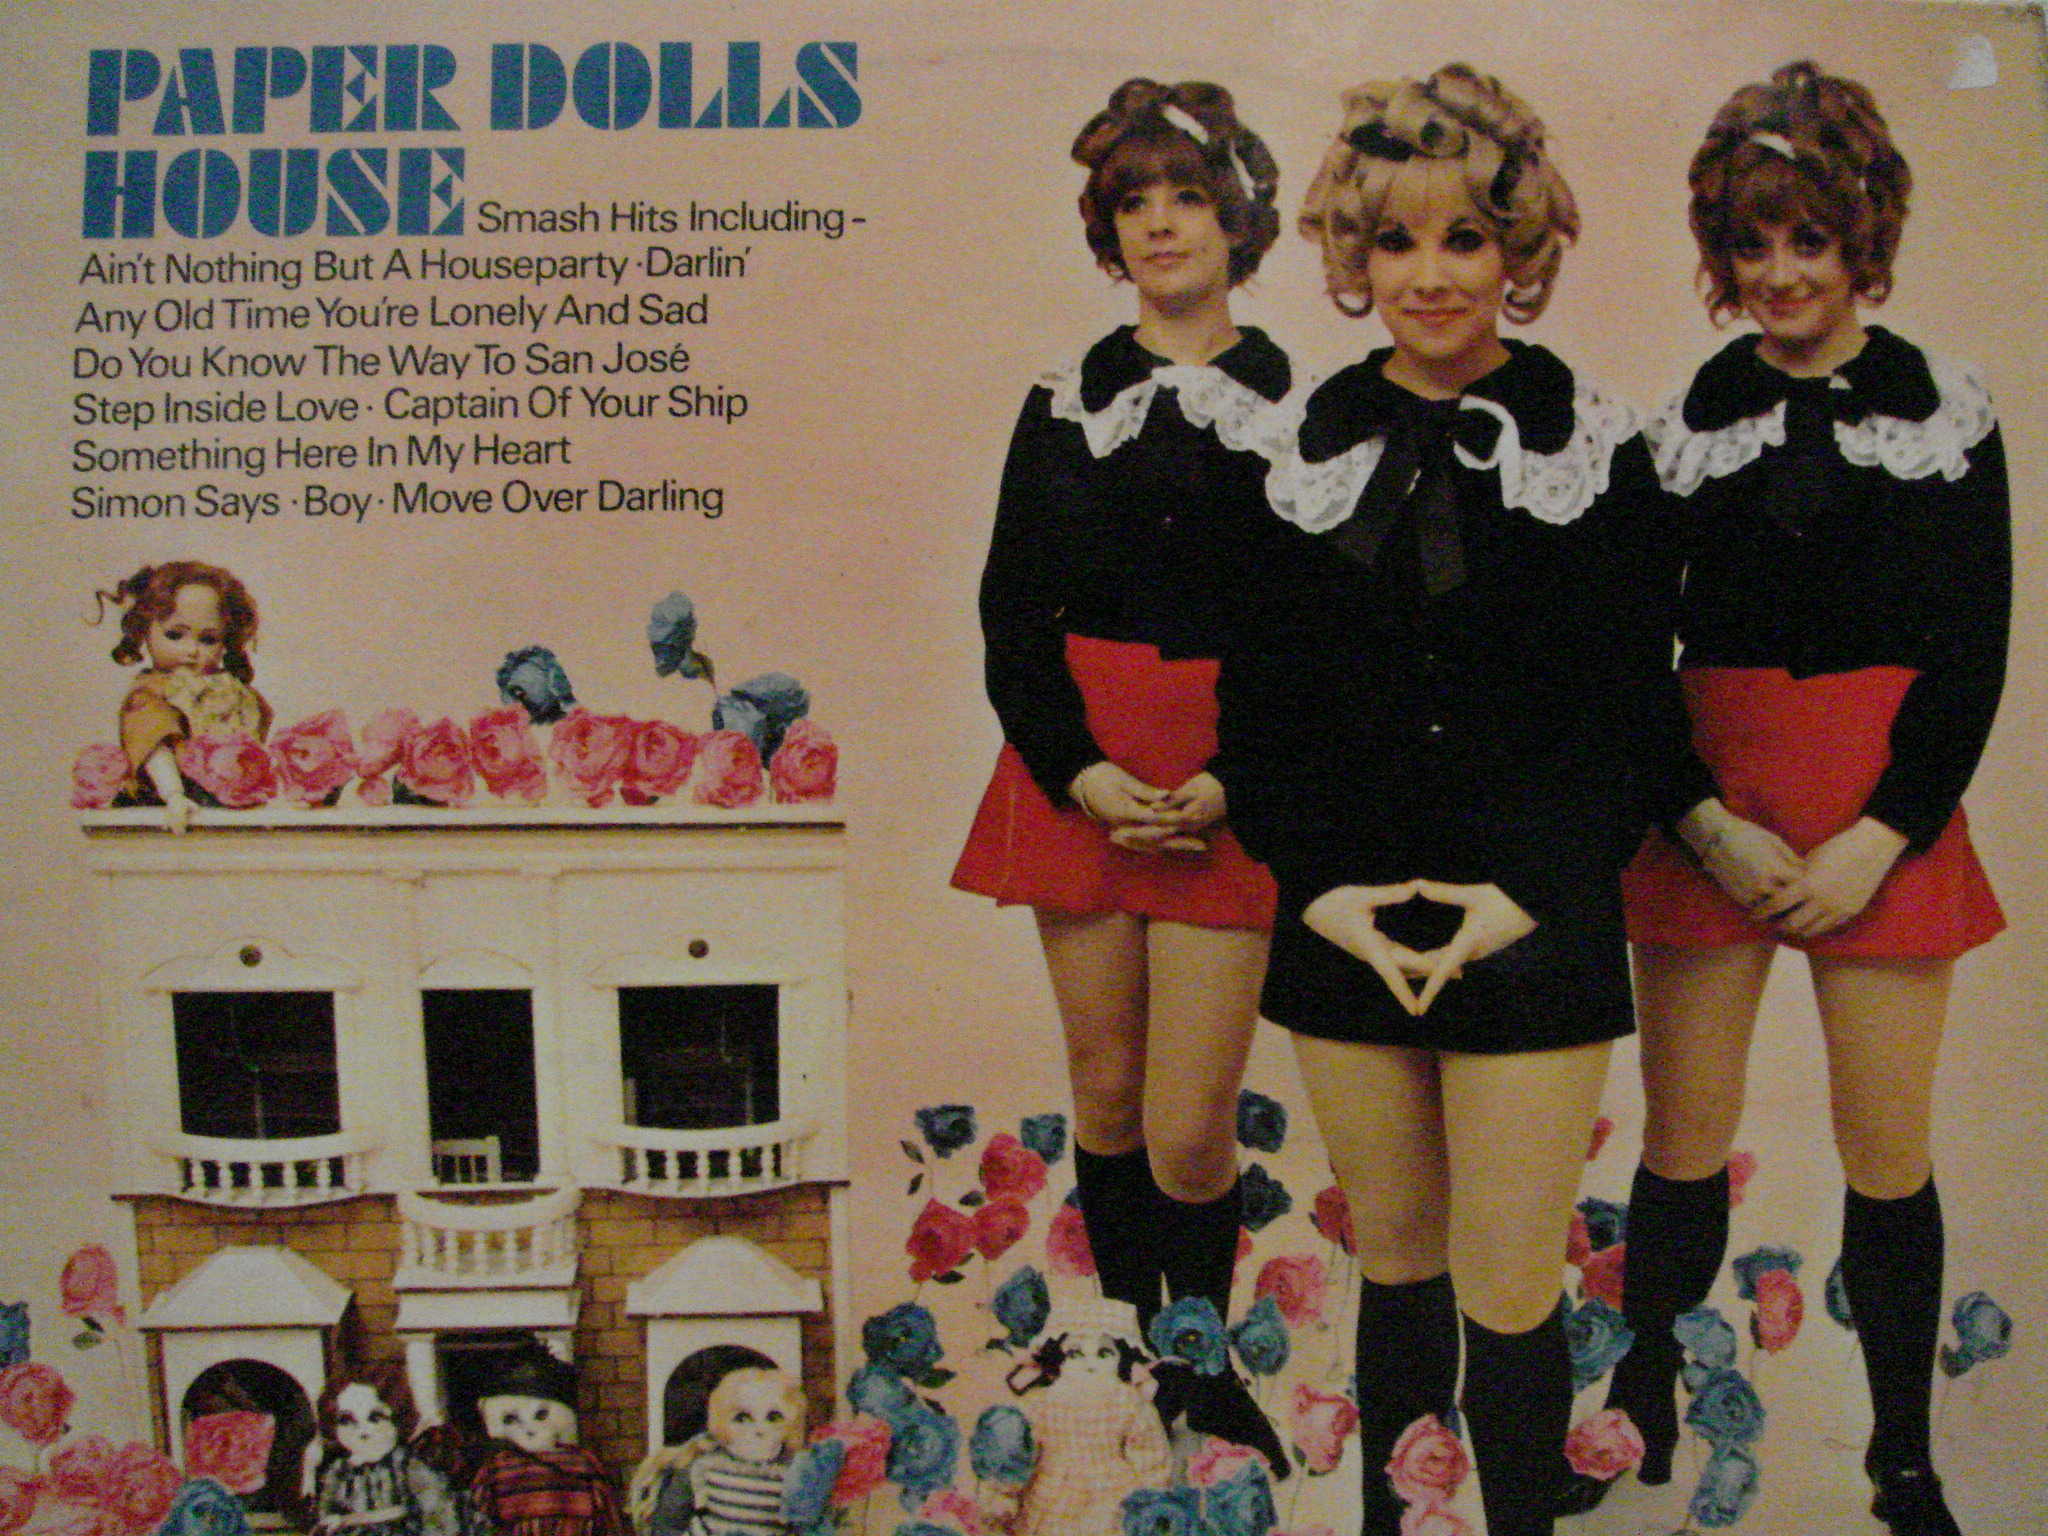 Groovy music a go go 19 paper dolls paper dolls house for Groovy house music